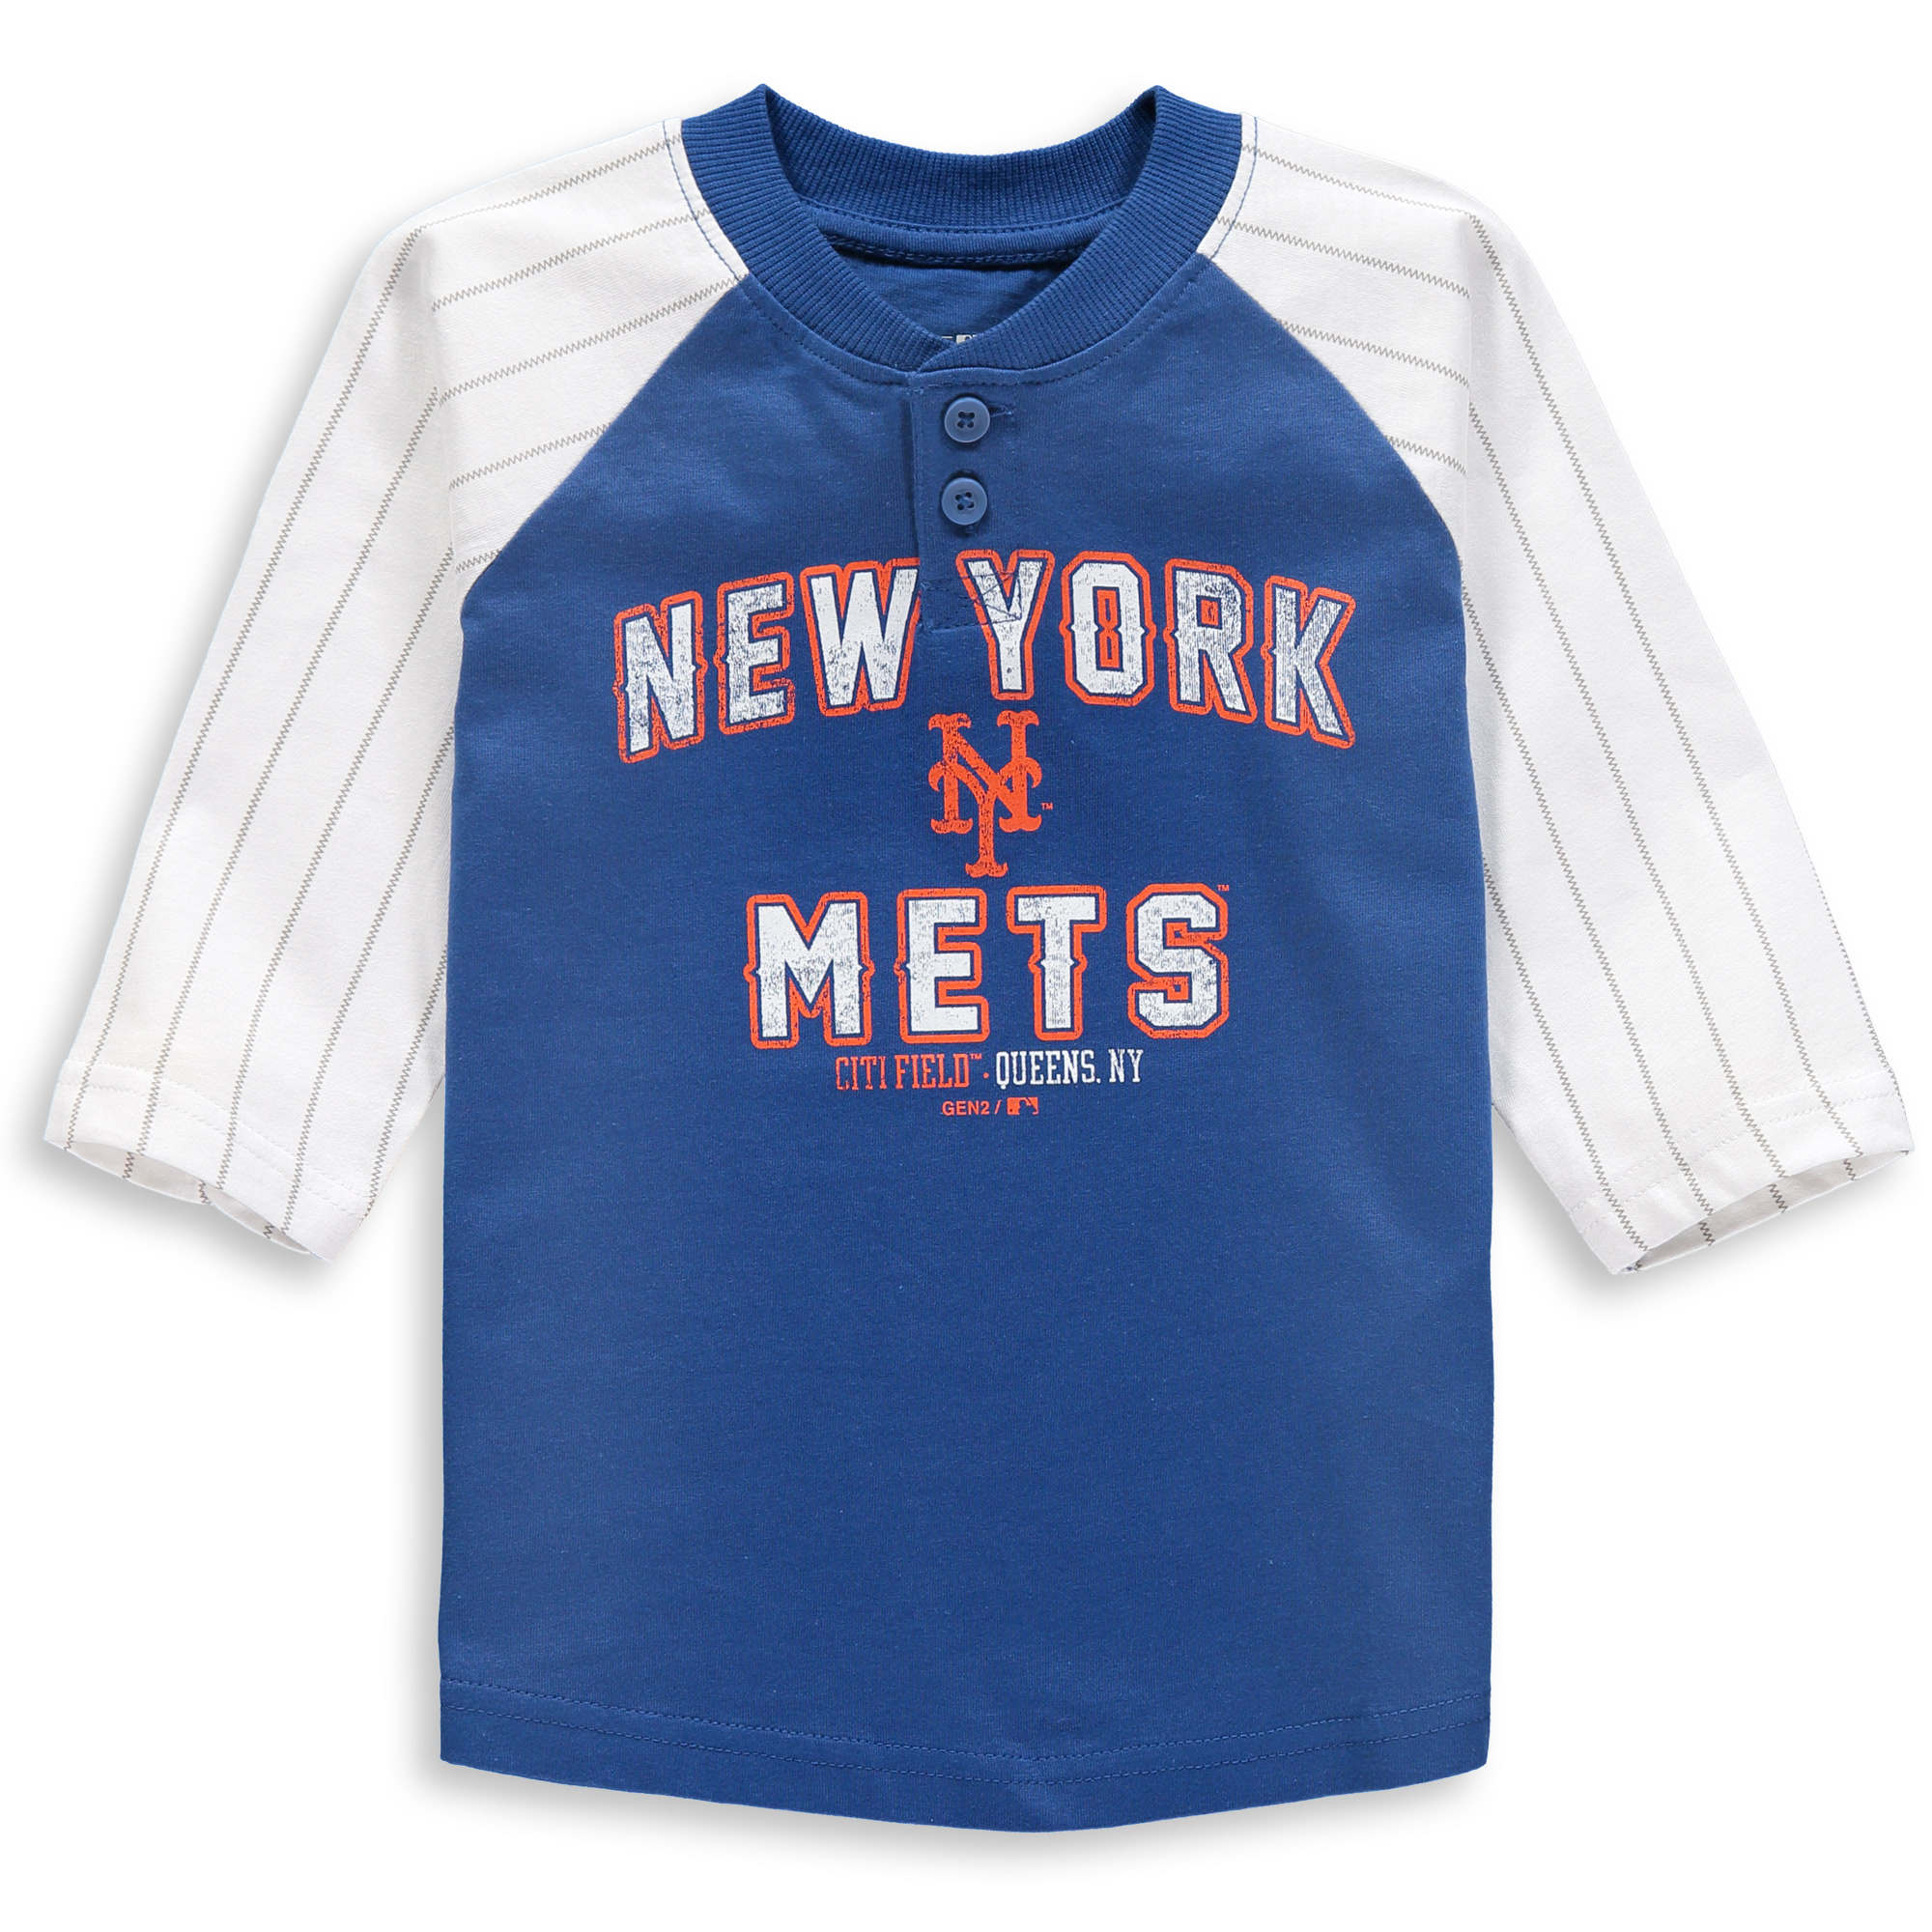 New York Mets Toddler The Original 3/4-Sleeve T-Shirt - Royal